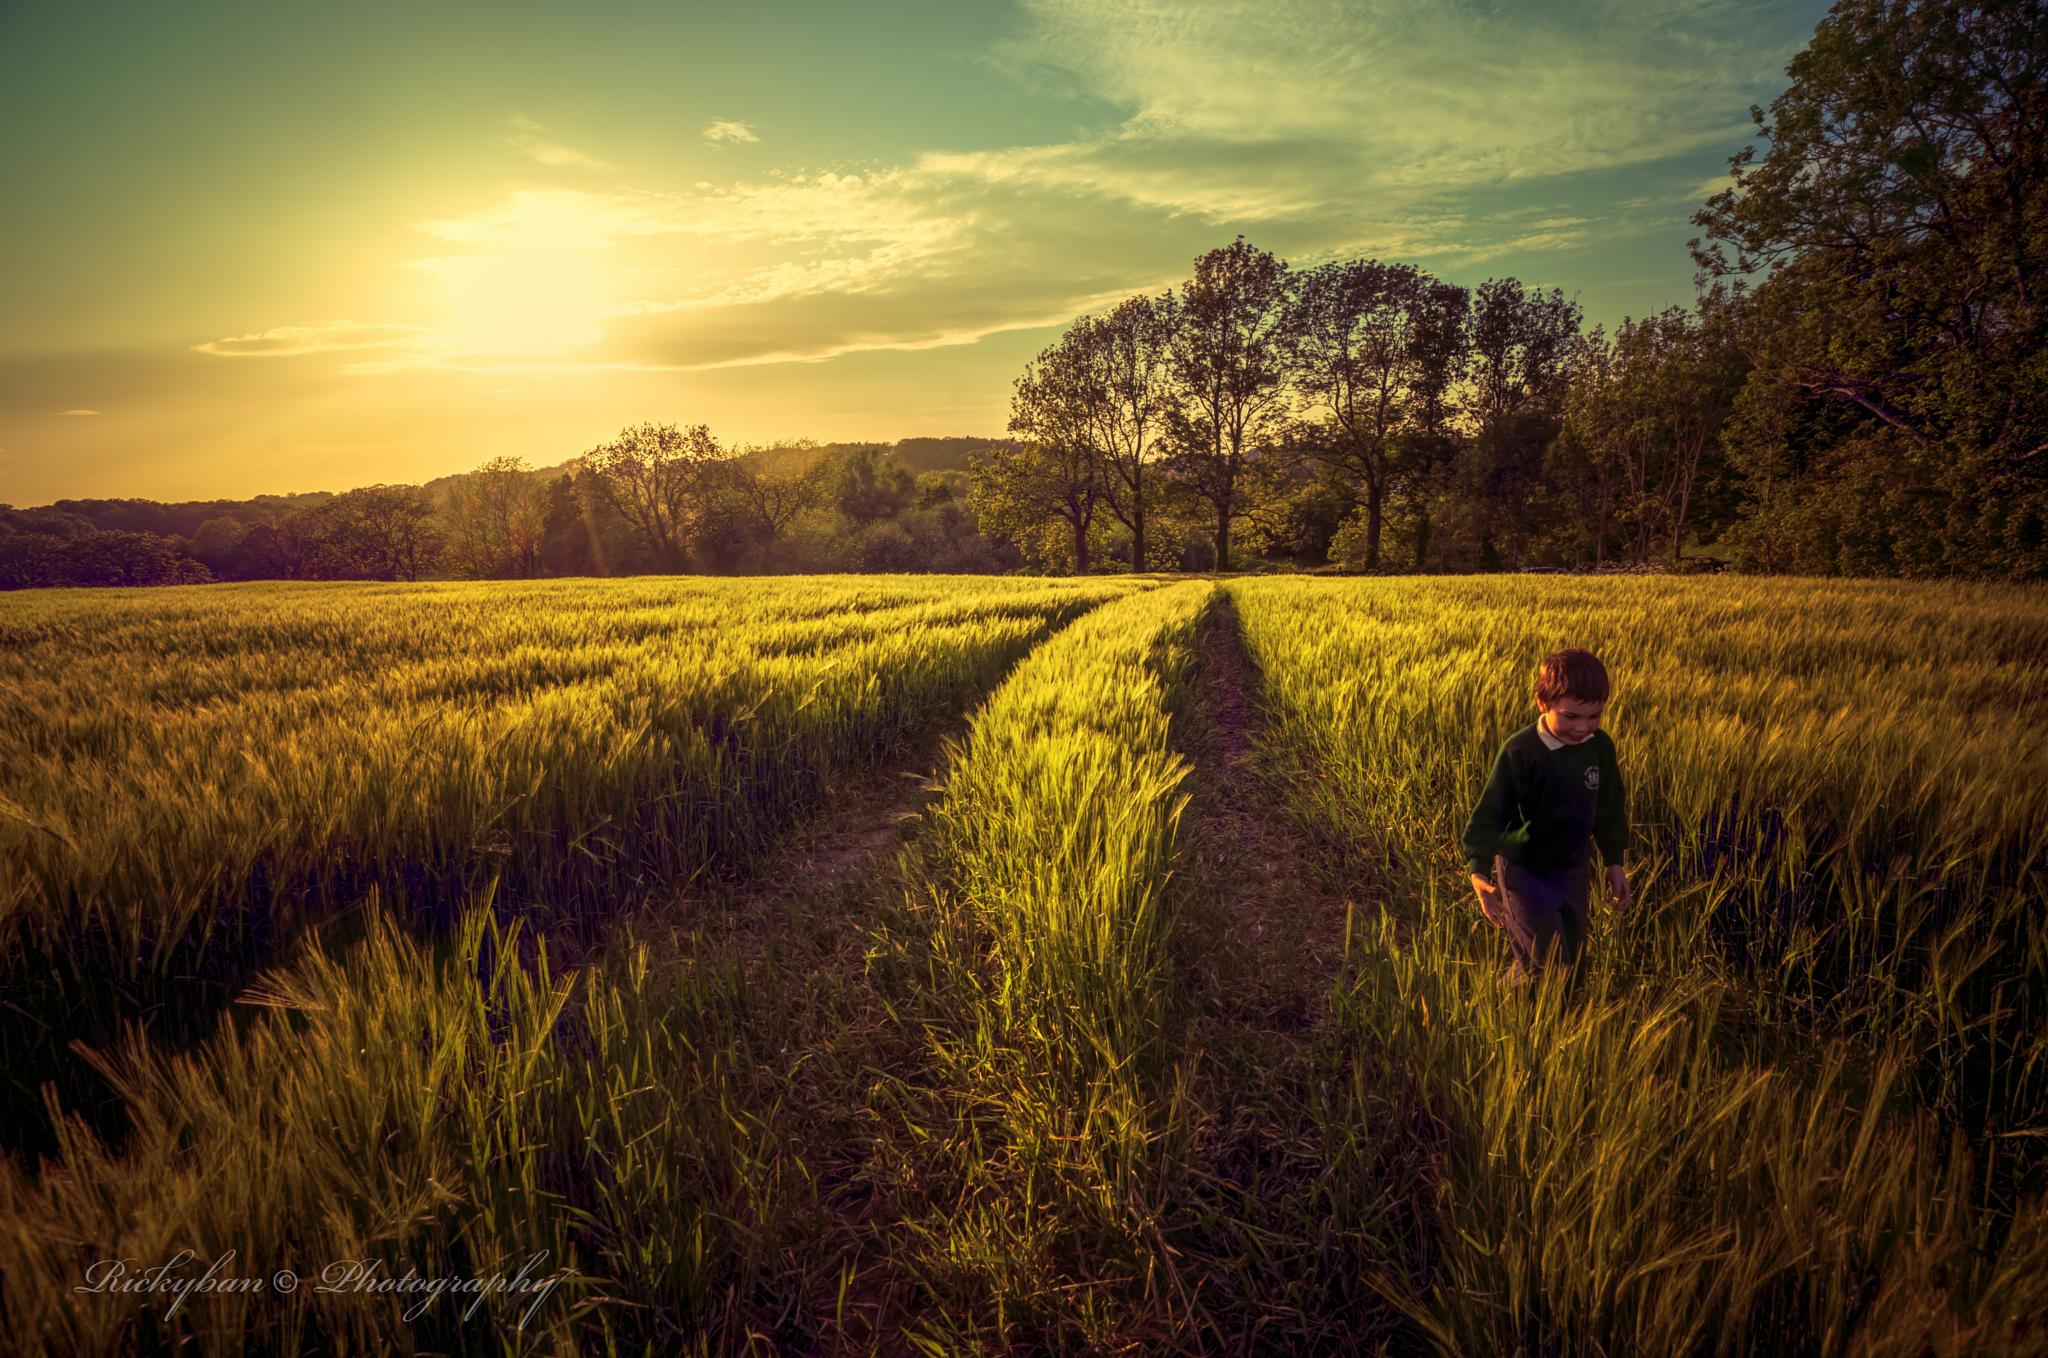 Evening walk by rickyban_Photography